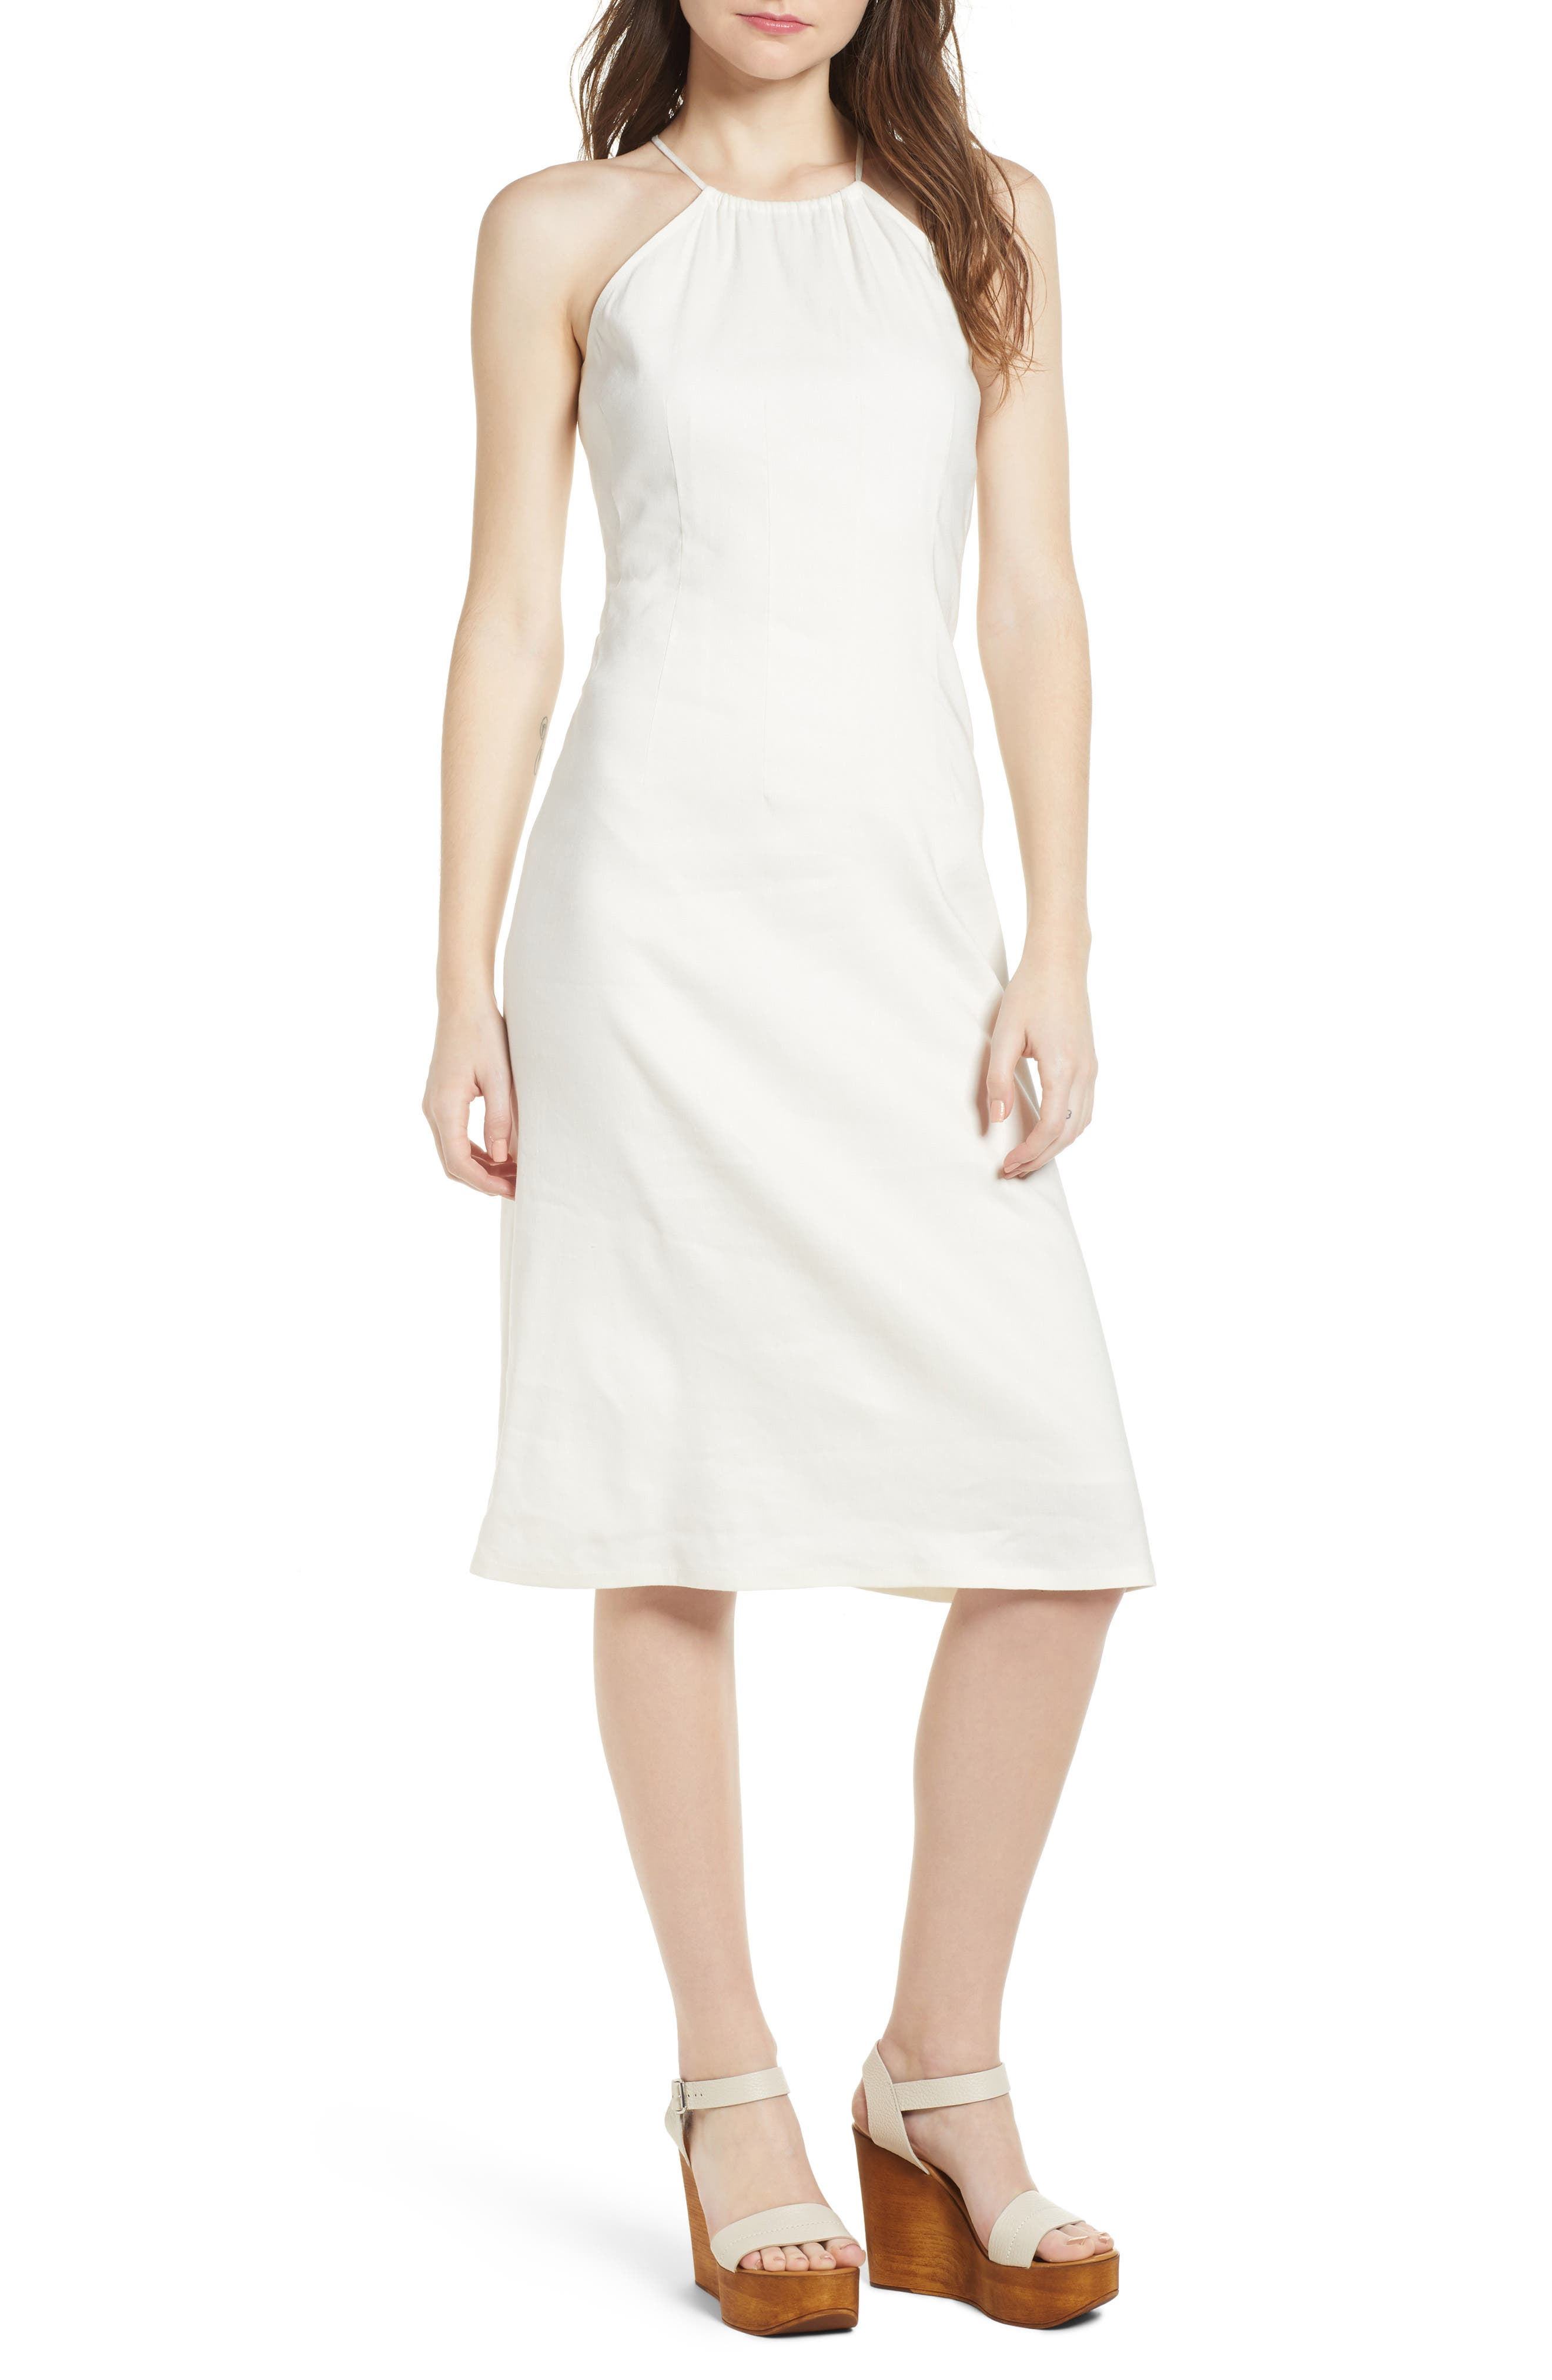 Dress for Women, Evening Cocktail Party On Sale, White, Cotton, 2017, 8 Fabiana Filippi